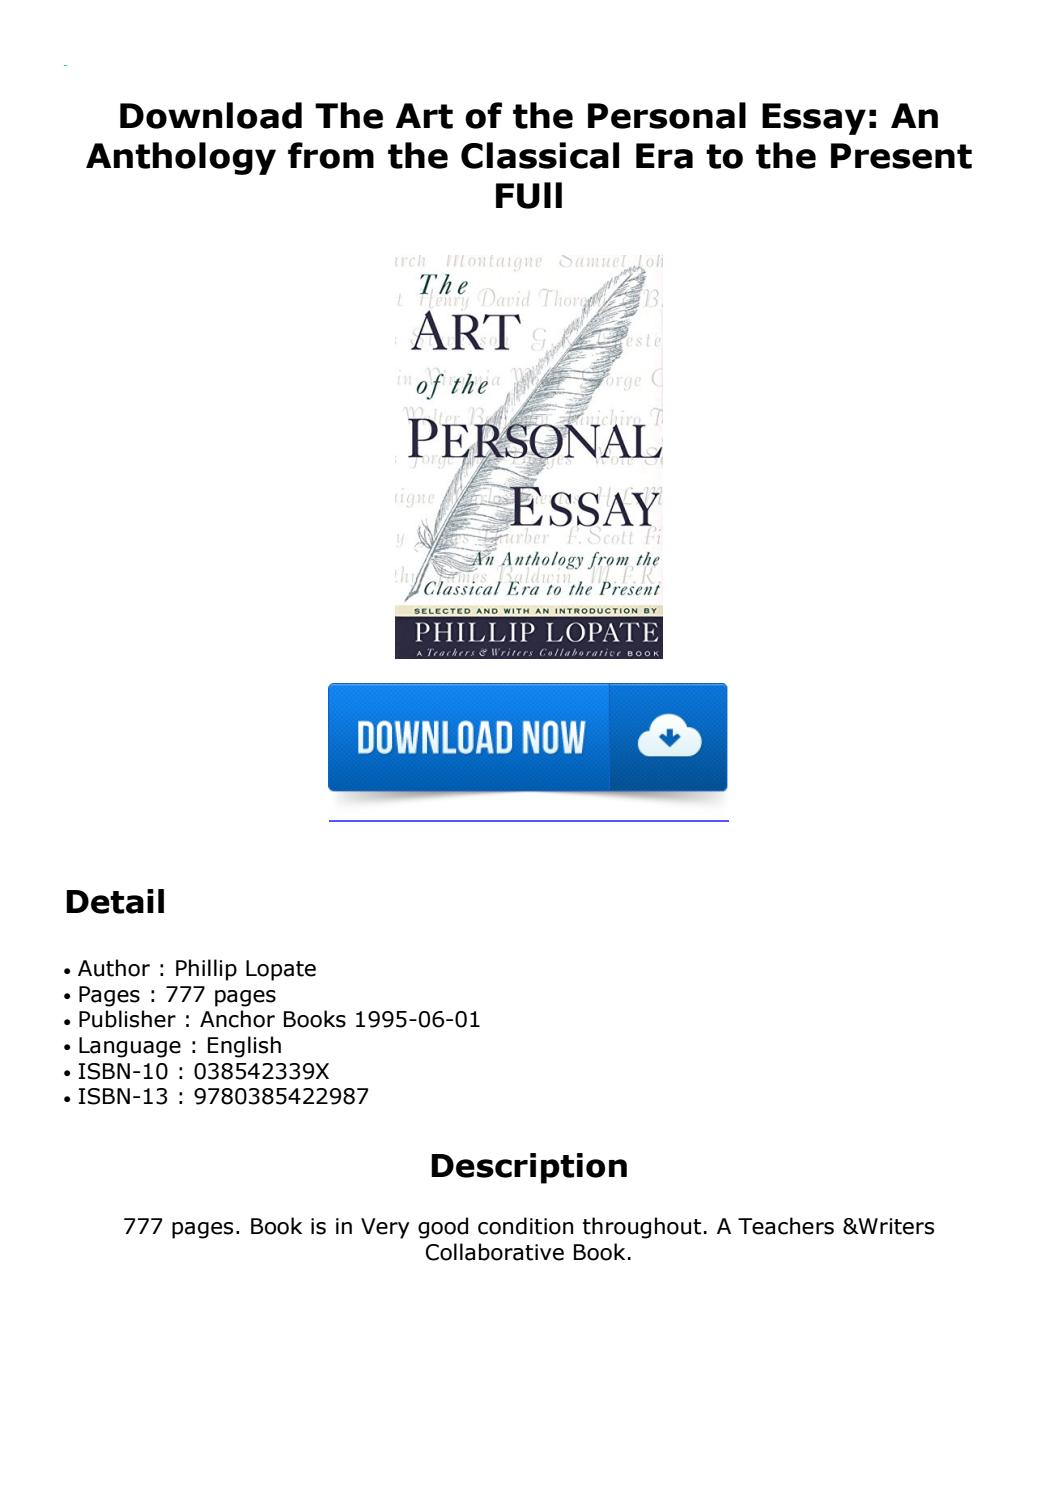 002 Page 1 The Art Of Personal Essay Beautiful Phillip Lopate Table Contents Sparknotes Full